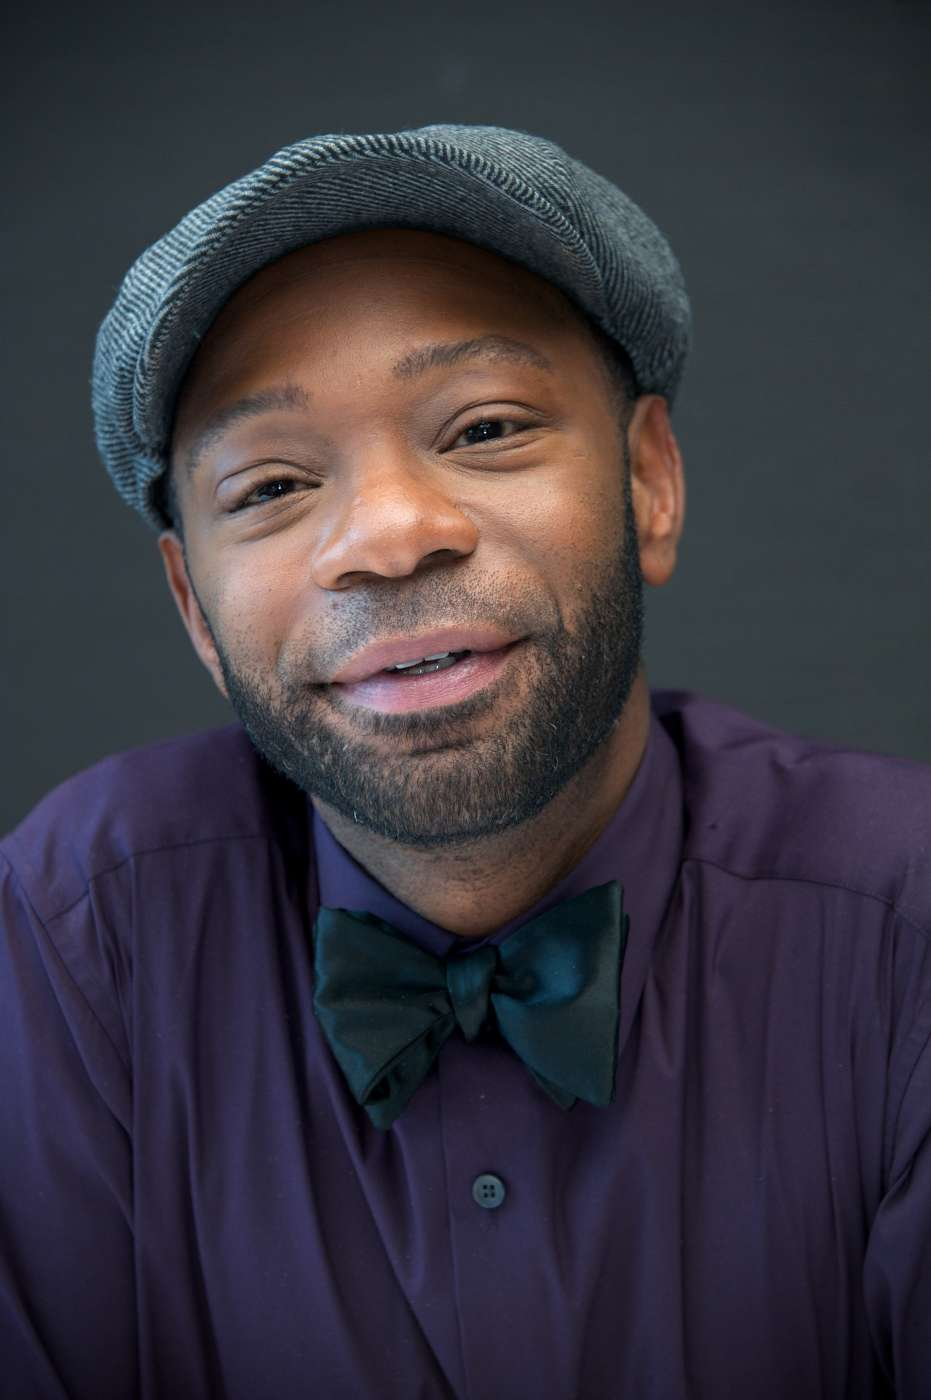 True Blood Actor Nelsan Ellis Has Passed Away Aged 39 Smooth